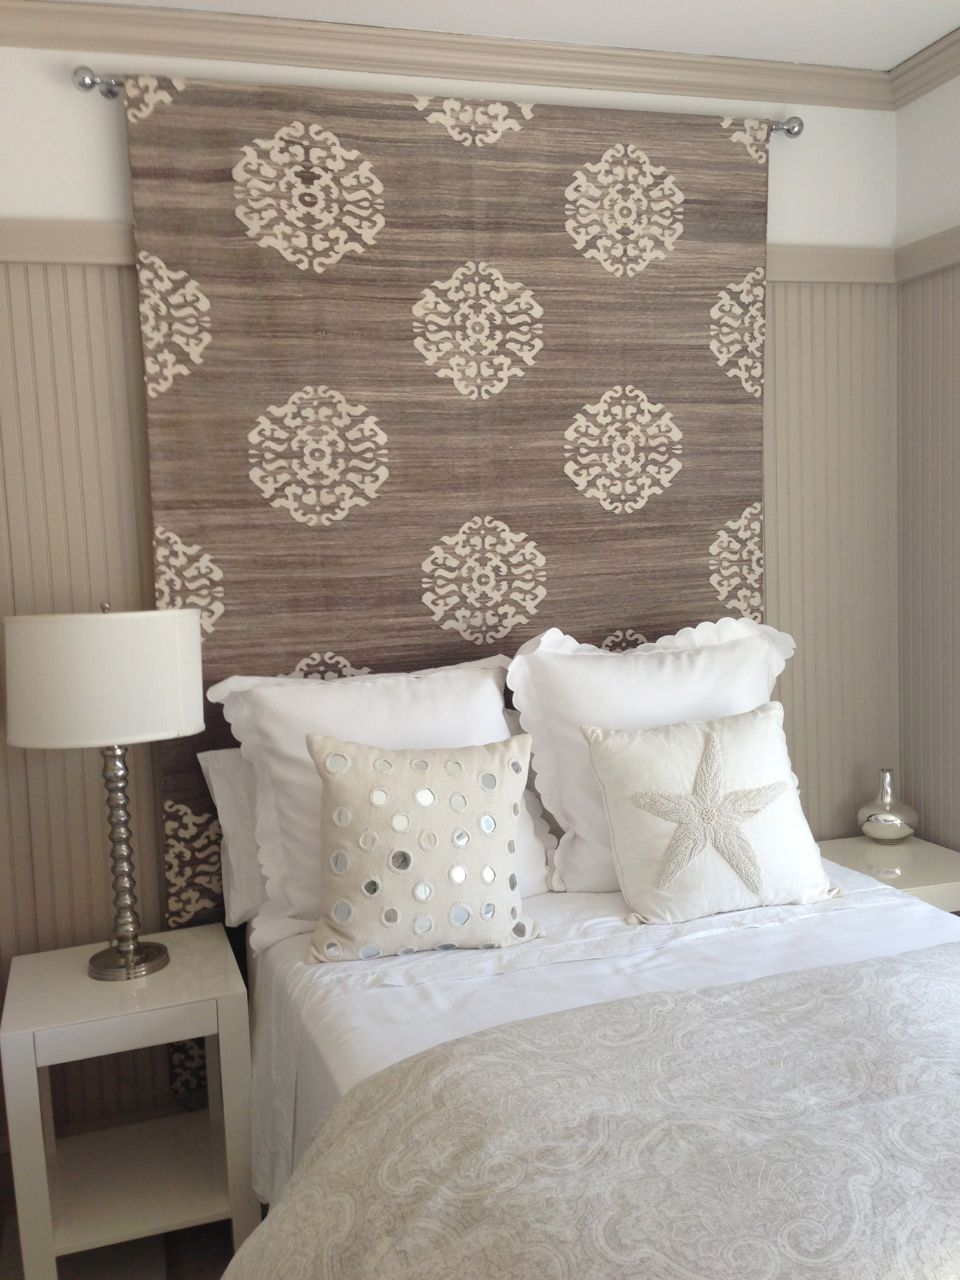 Ideas For A Headboard Part - 22: H: Headboard Idea (rug, Tapestry Or Heavy Fabric) Would Help With Sound